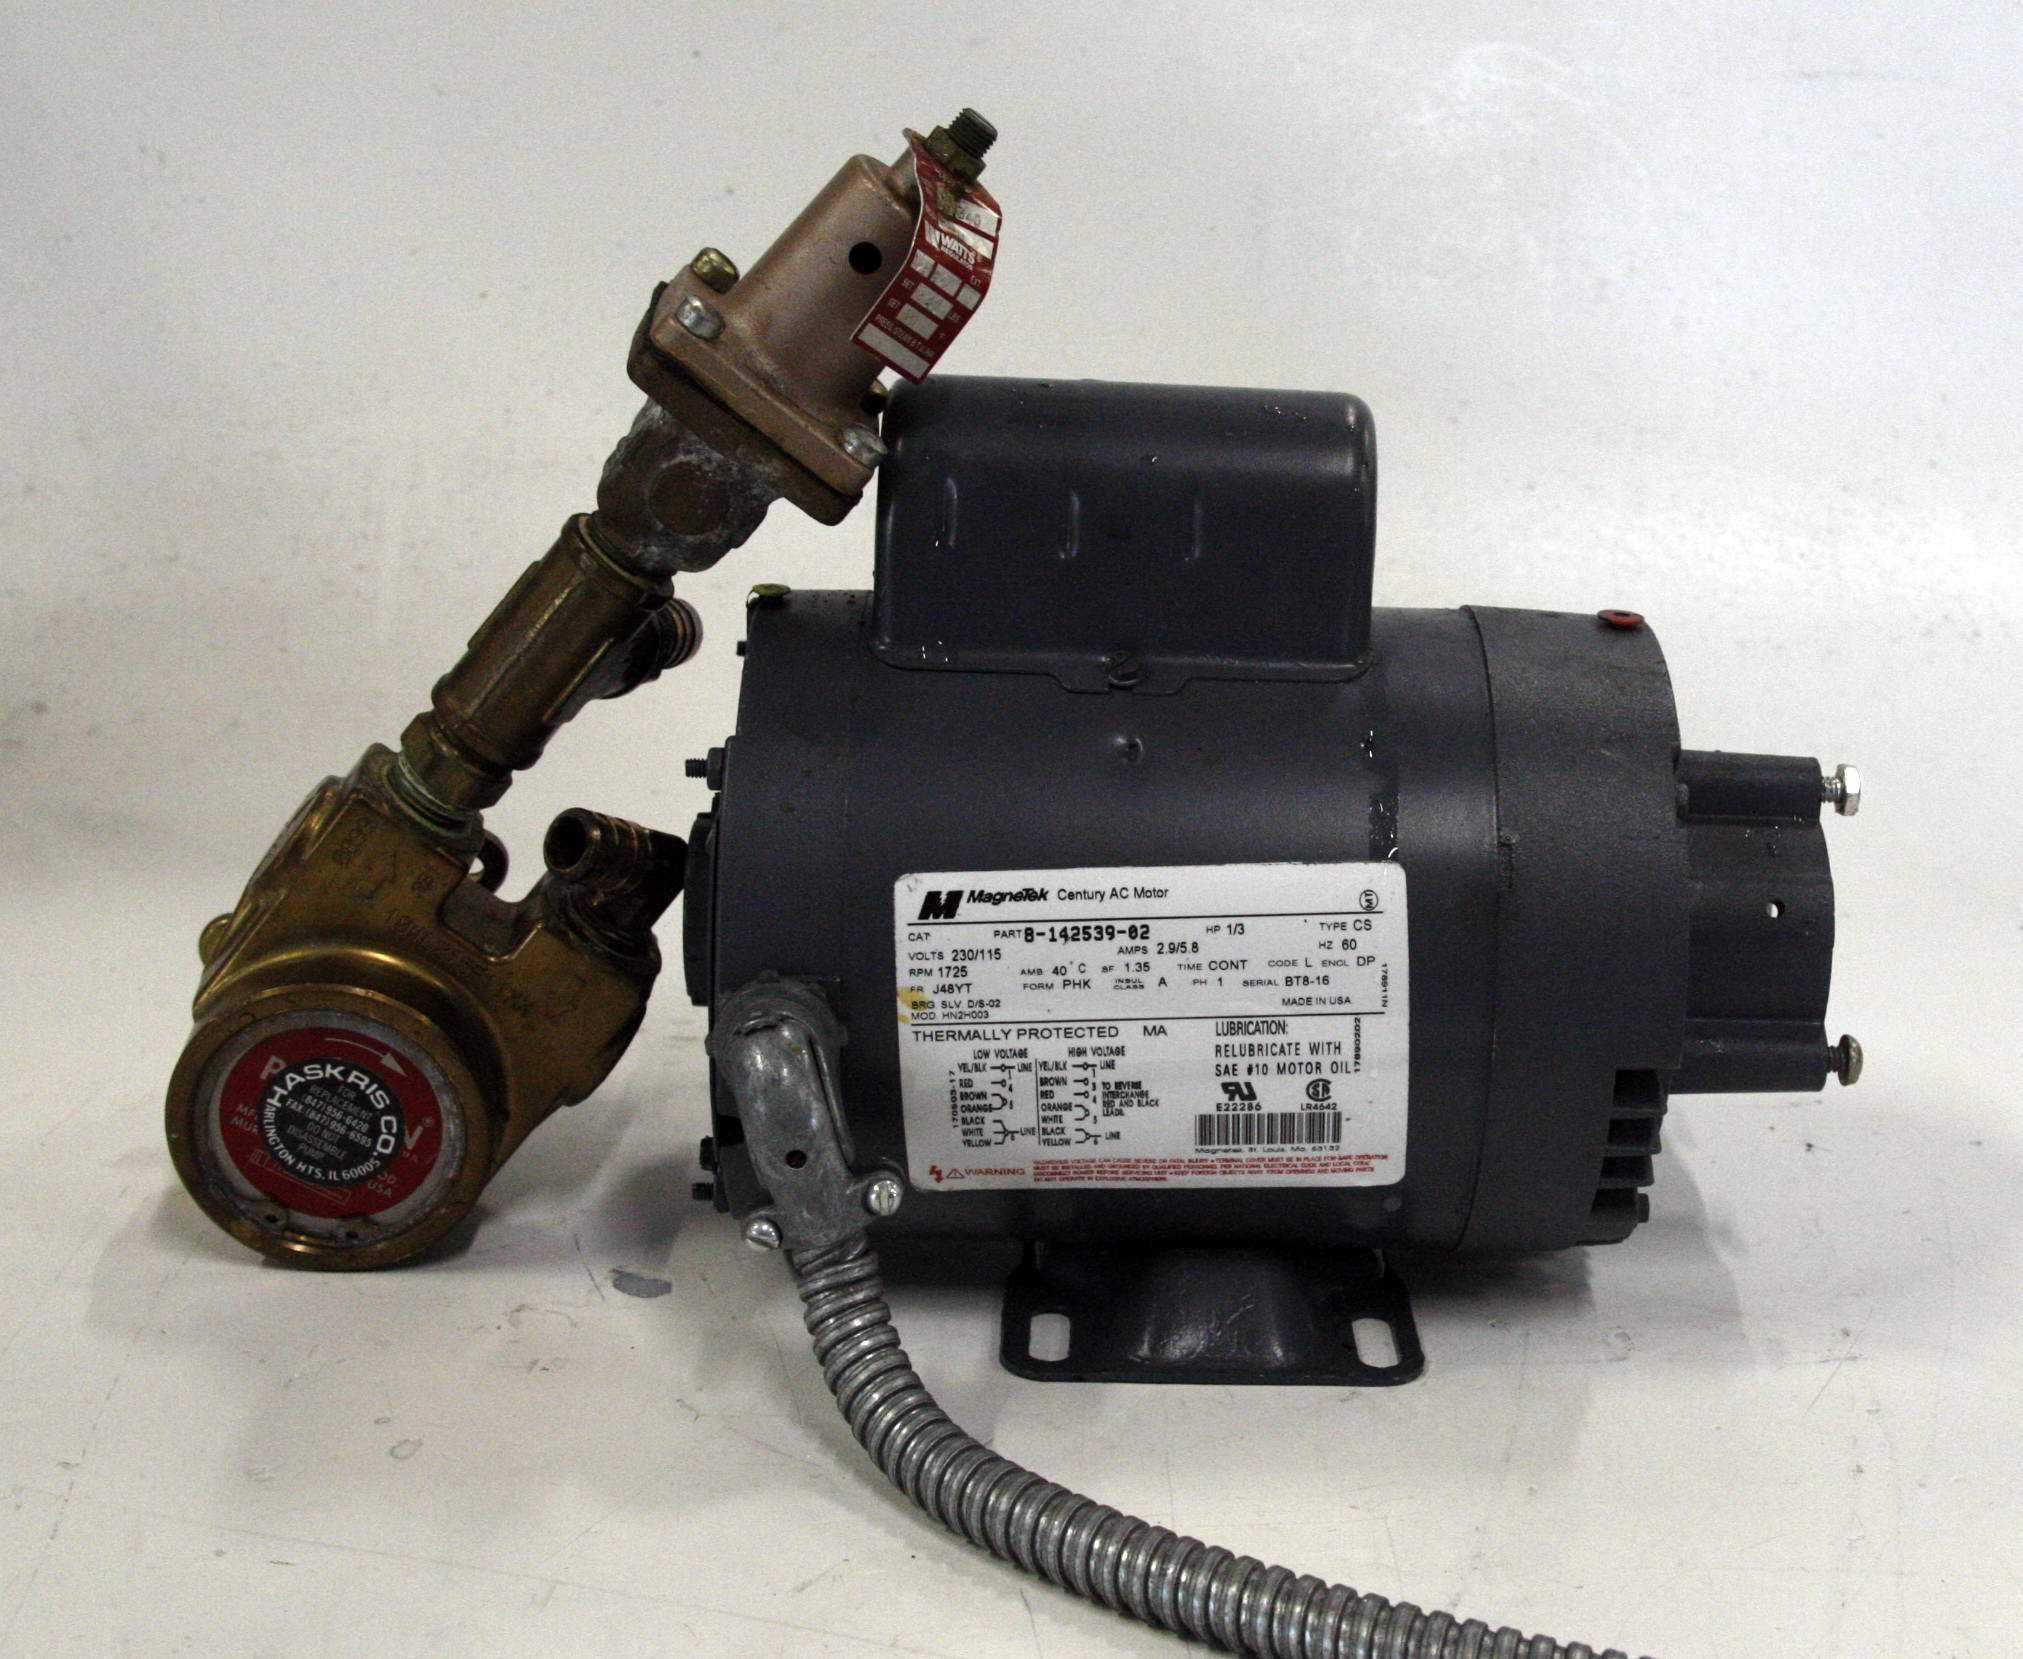 Haskris Motor and Procon pump